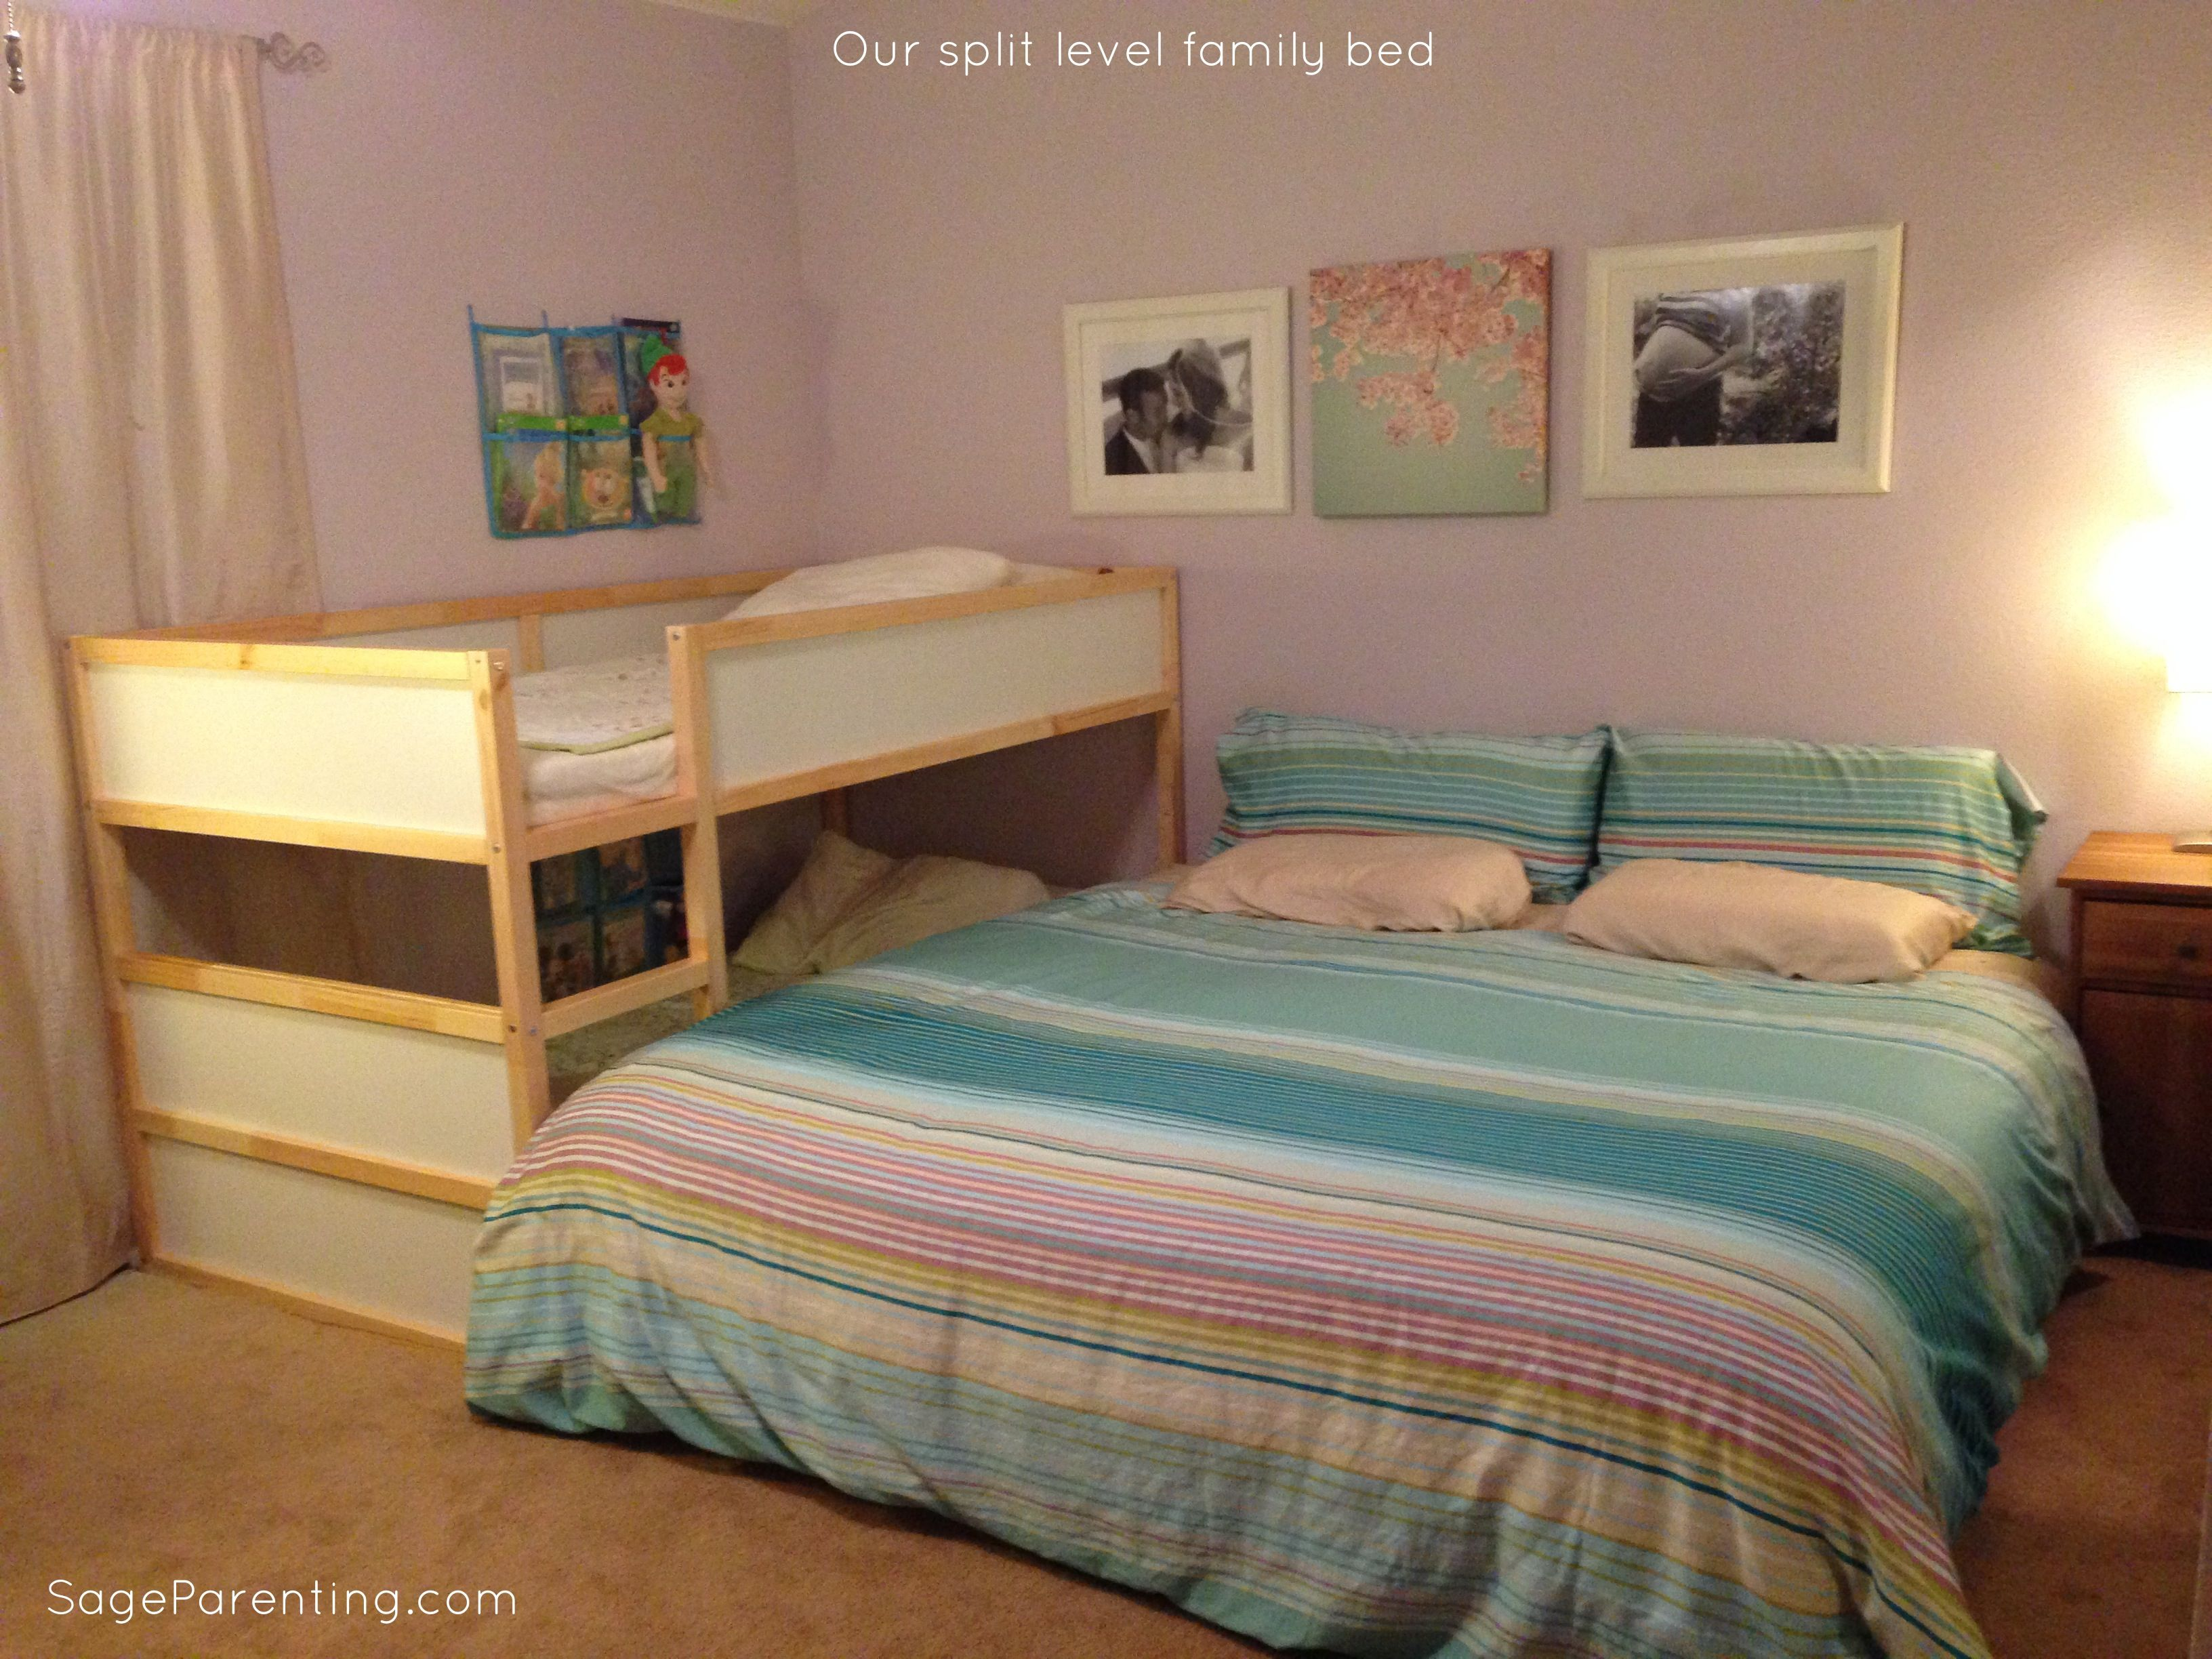 Our Split Level Family Bed Cosleeping